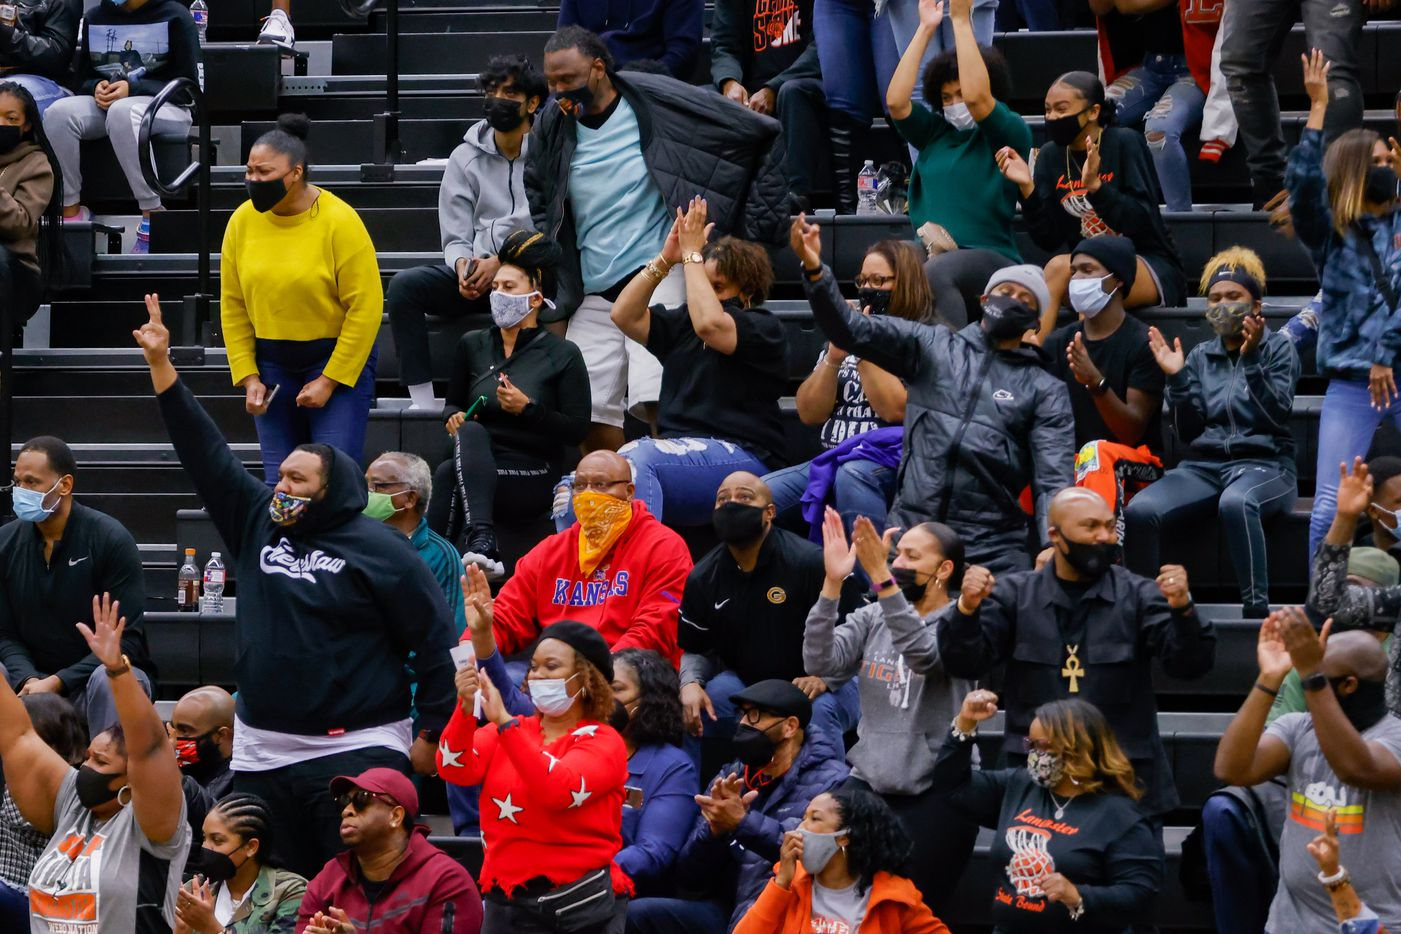 Lancaster fans celebrate during the first half of a boys basketball UIL Class 5A Region II playoff game against Kimball in Forney on Friday, March 5, 2021. (Juan Figueroa/ The Dallas Morning News)